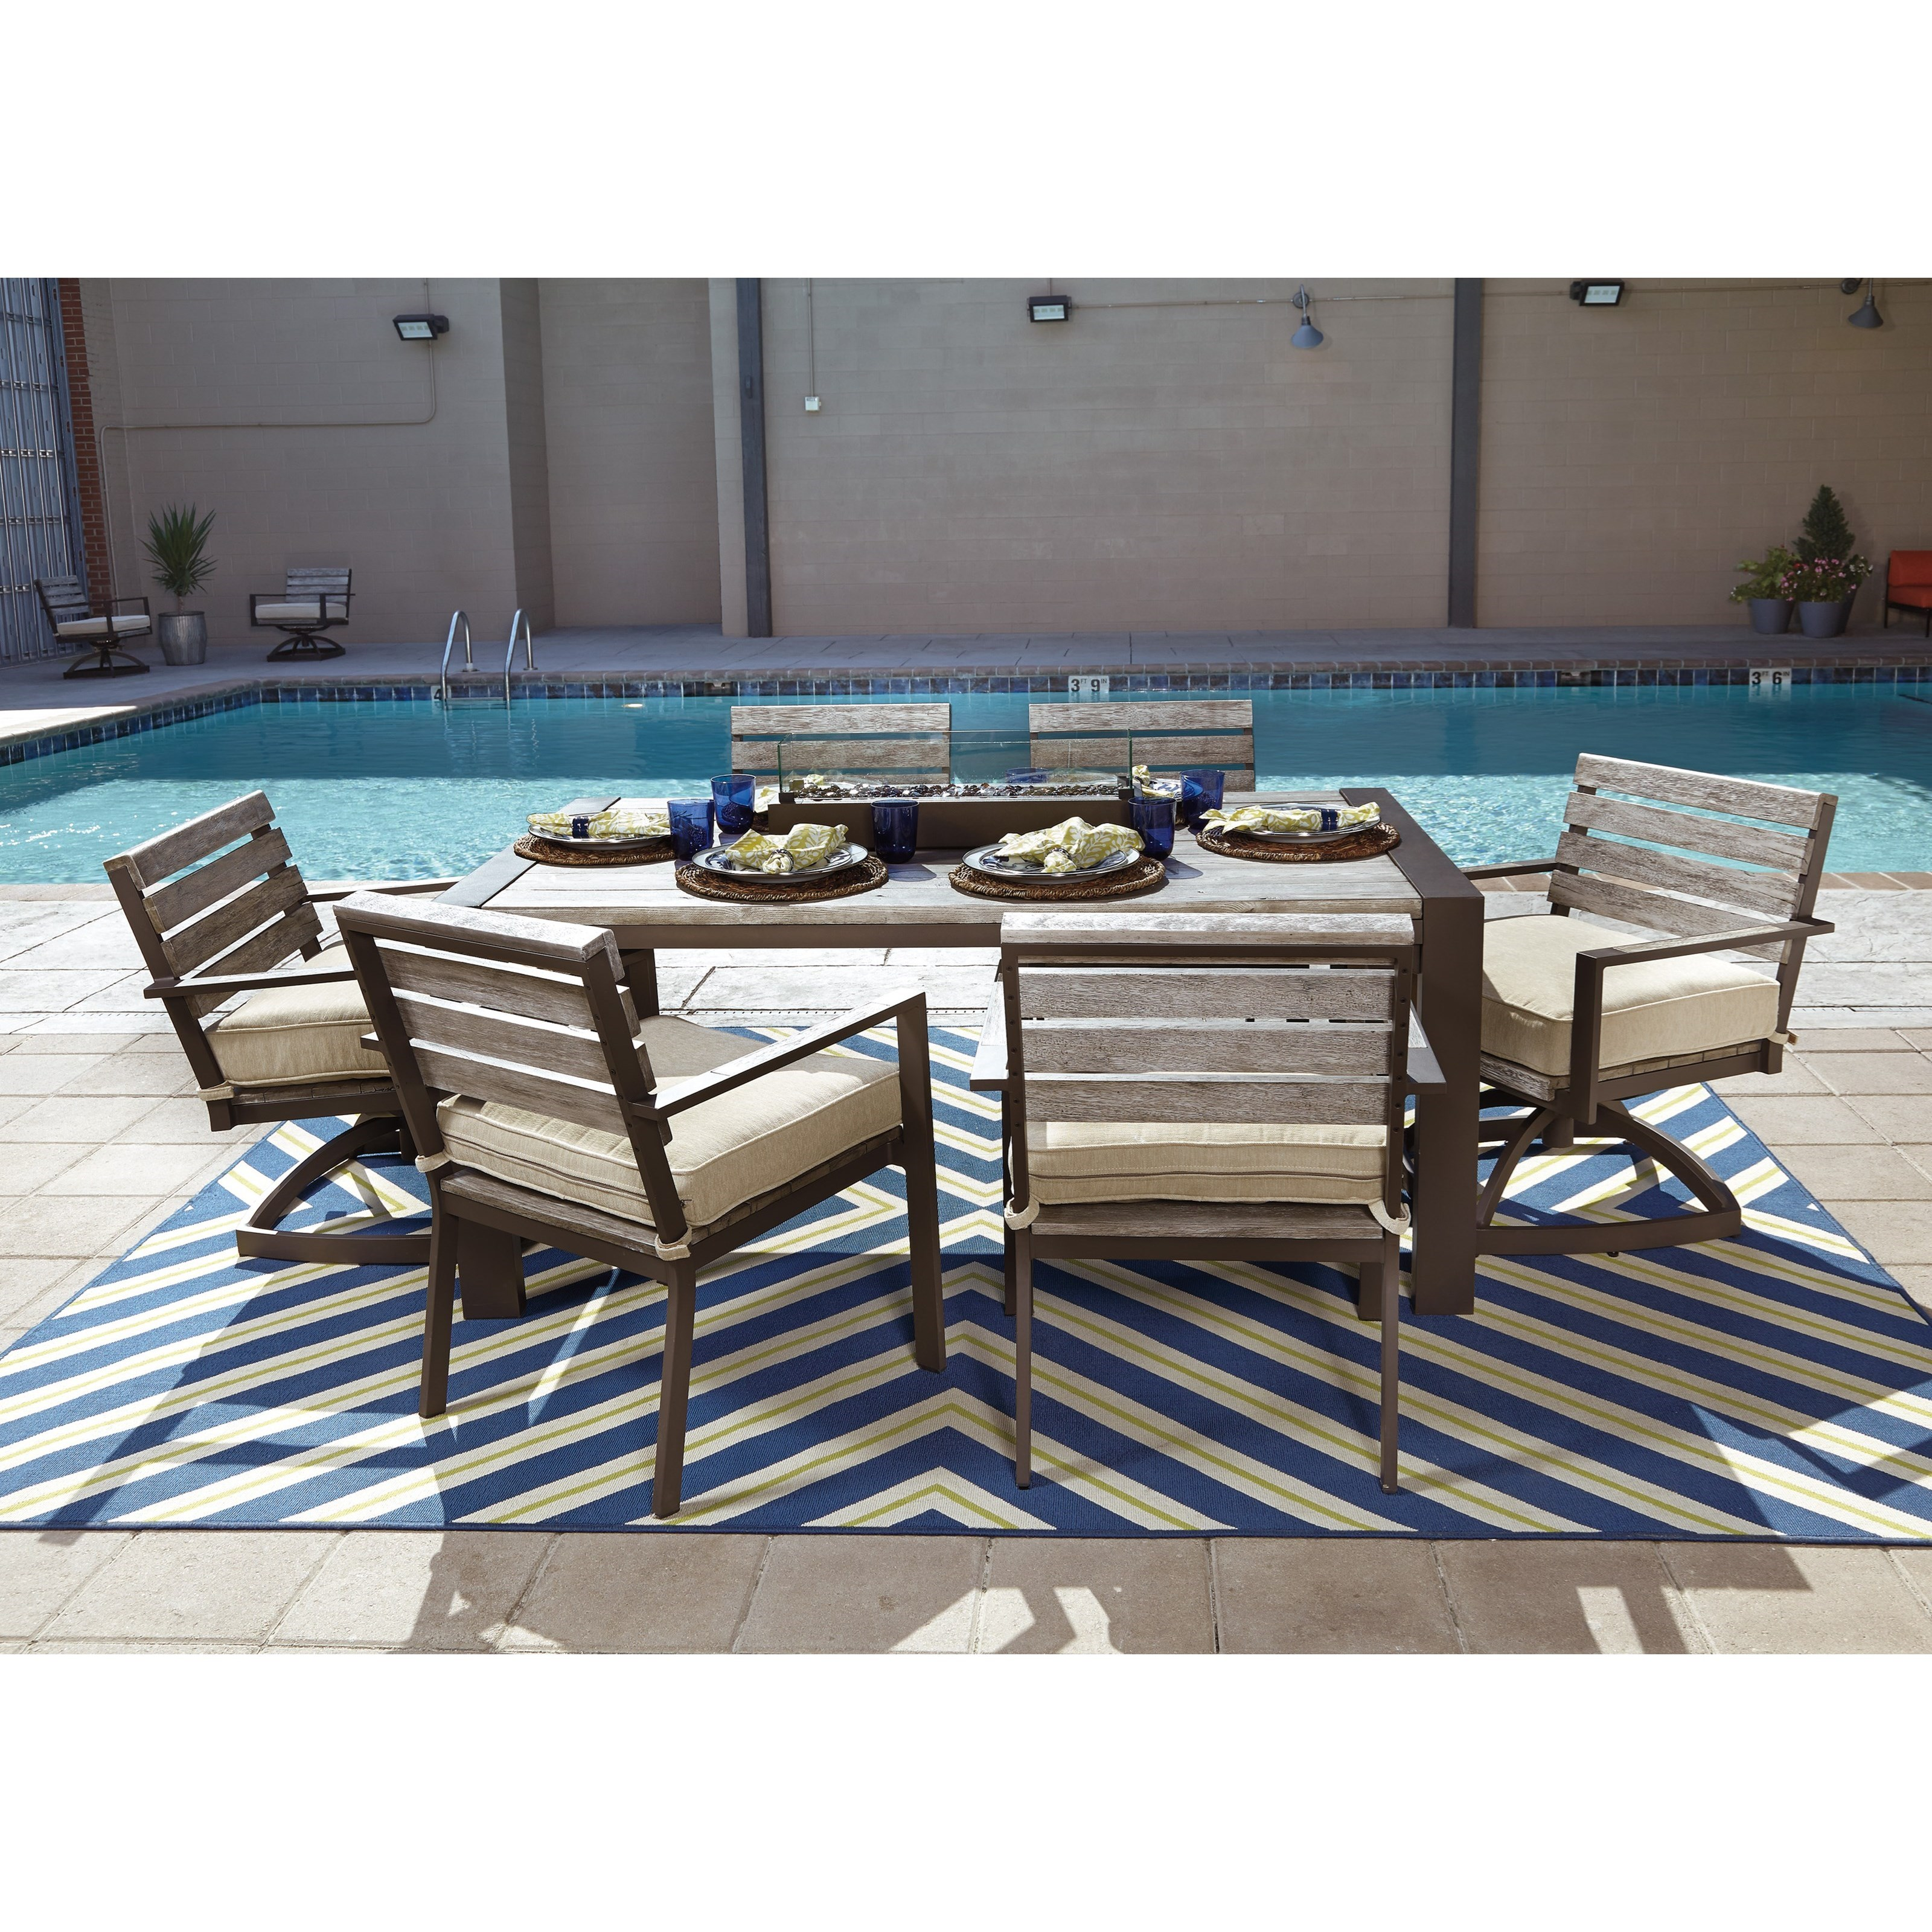 Outdoor Dining Table Set with Swivel Chairs by Signature Design by